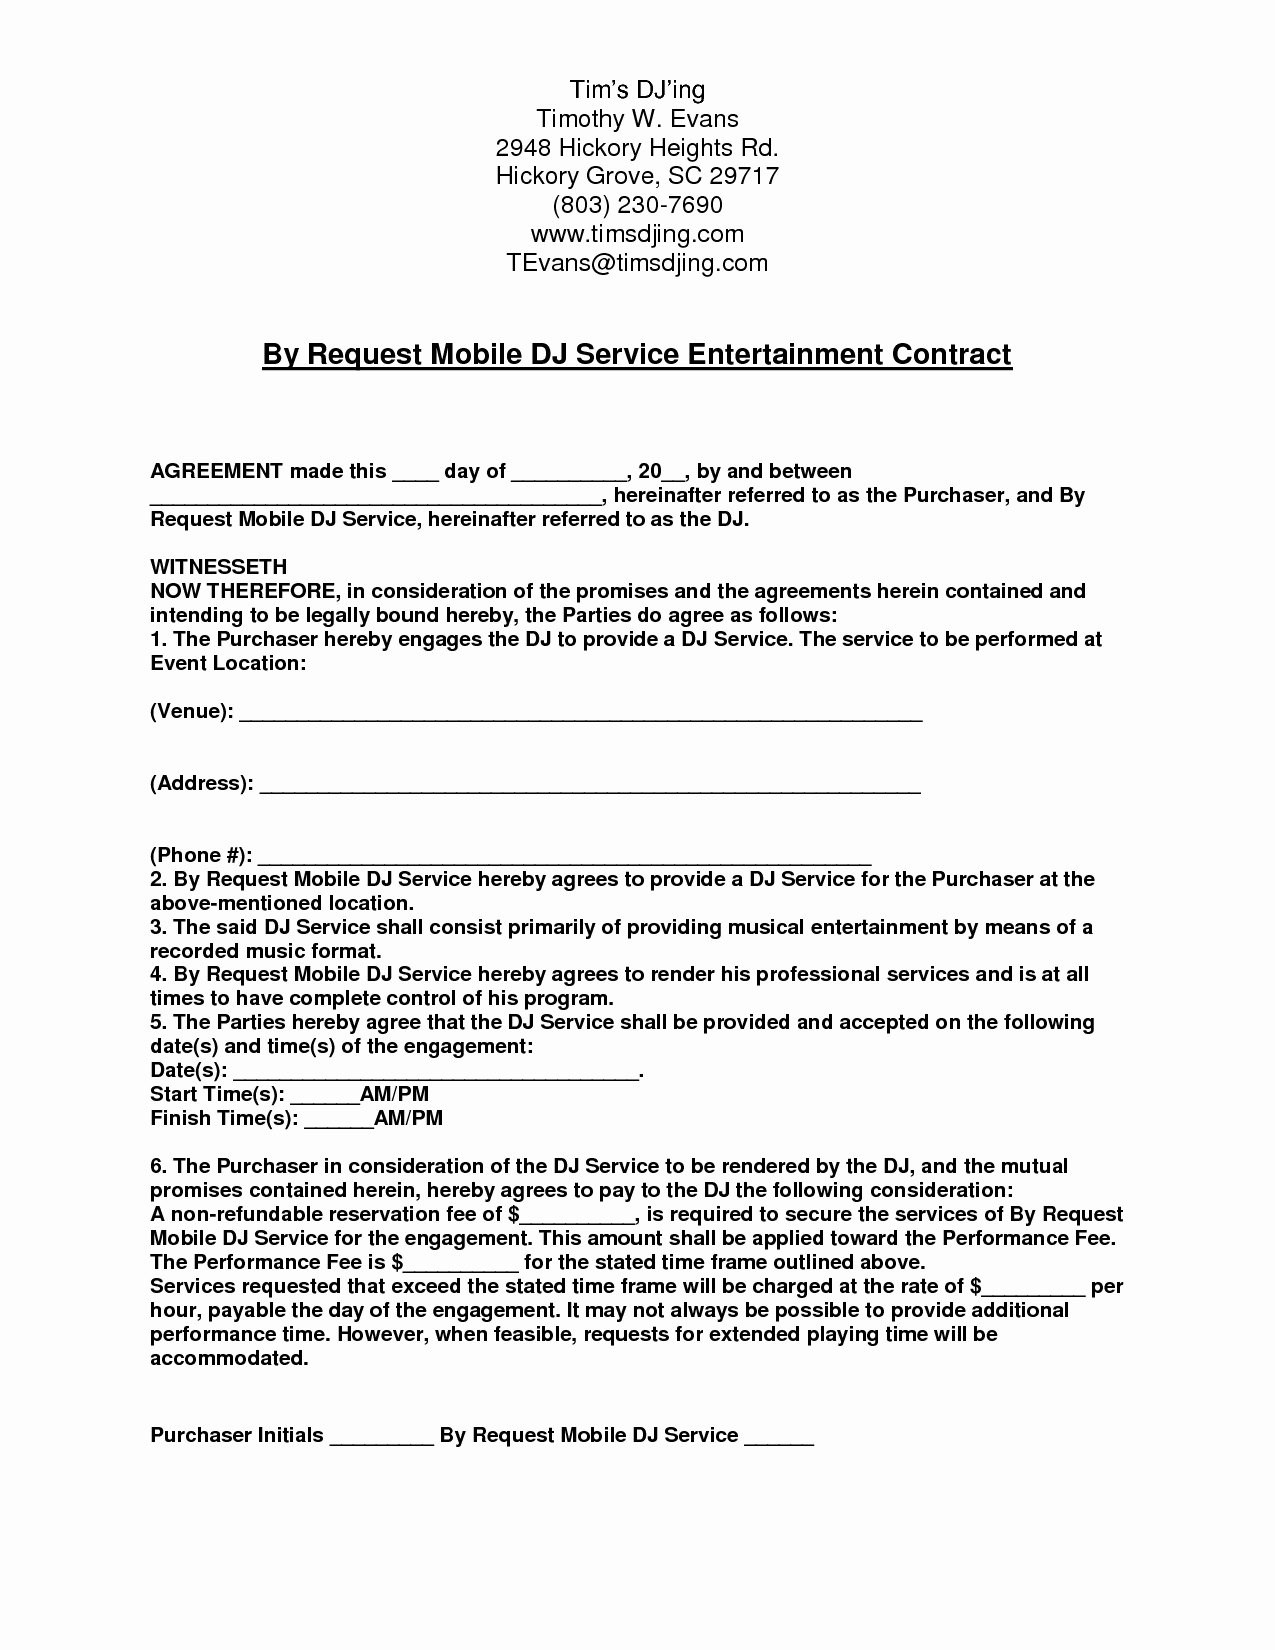 Dj Service Contract Template Awesome Mobile Dj Contract by Request Mobile Dj Service Entertainment Contract Pdf Pdf